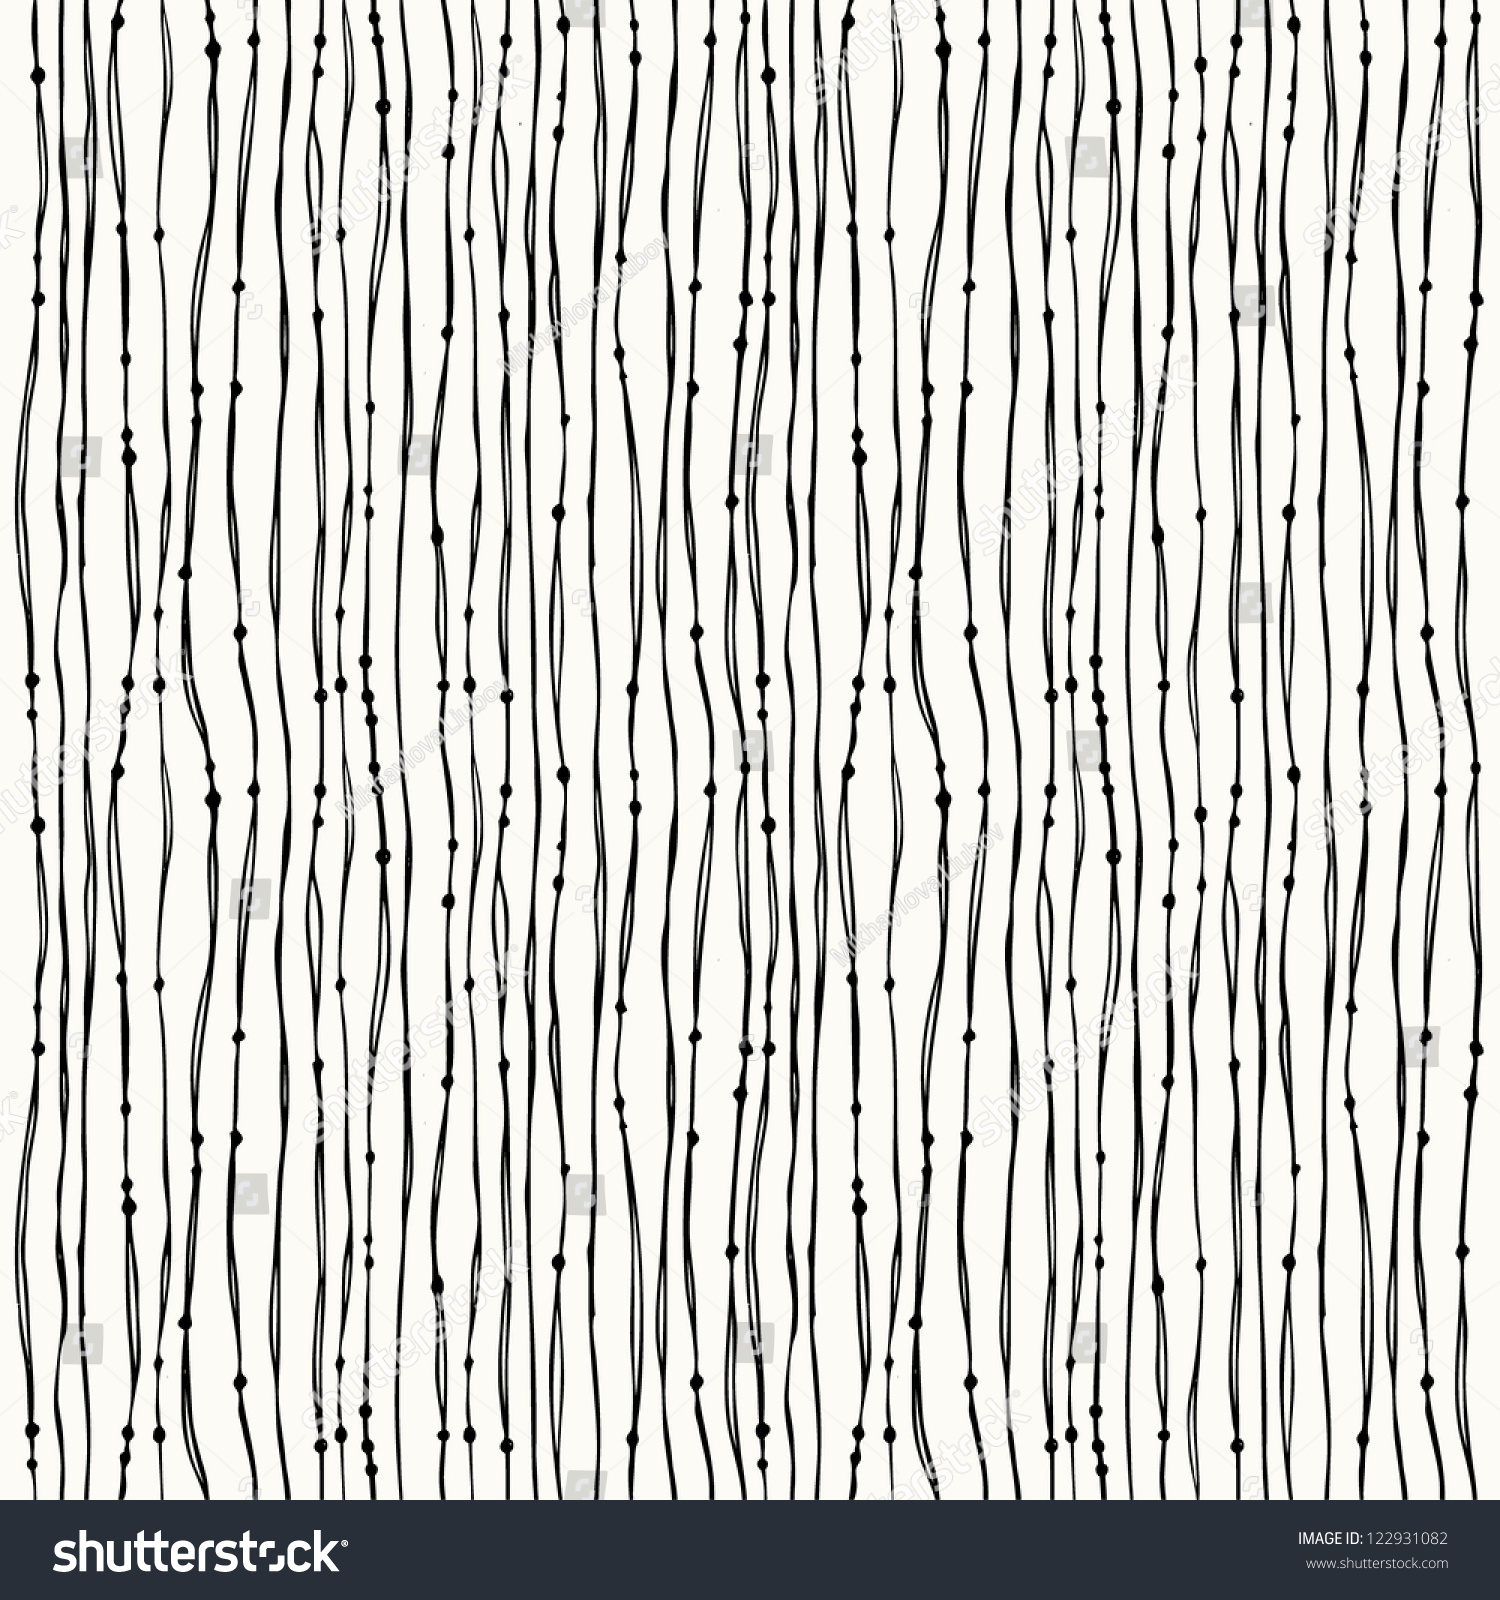 Seamless Black White Abstract Hand Drawn Stock Vector